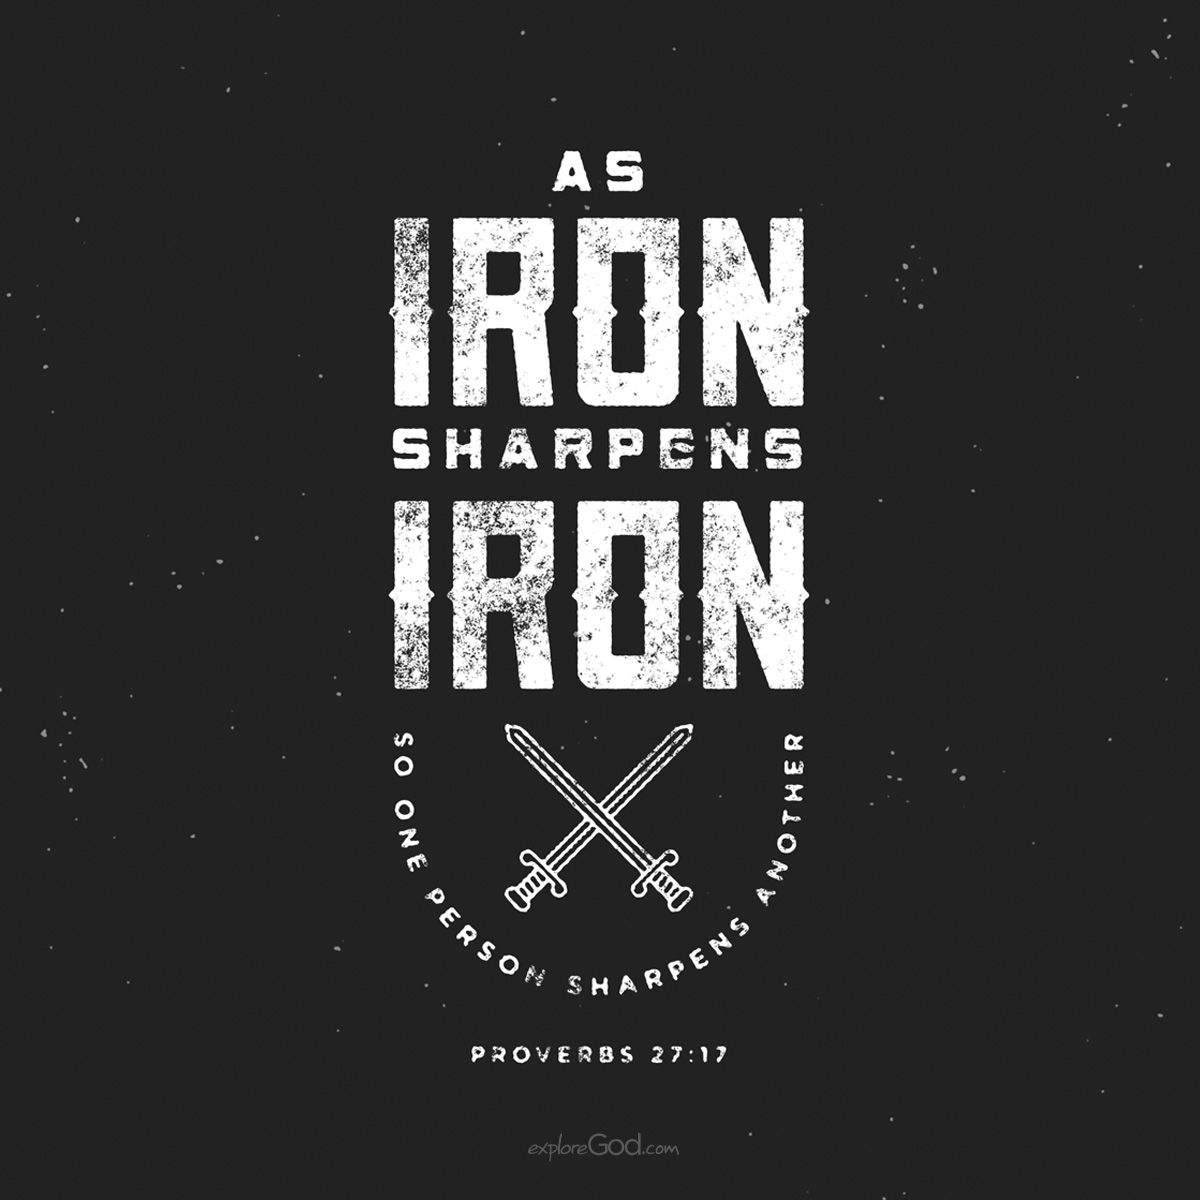 As iron sharpens iron so one person sharpens another proverbs as iron sharpens iron so one person sharpens another proverbs 2717 negle Choice Image